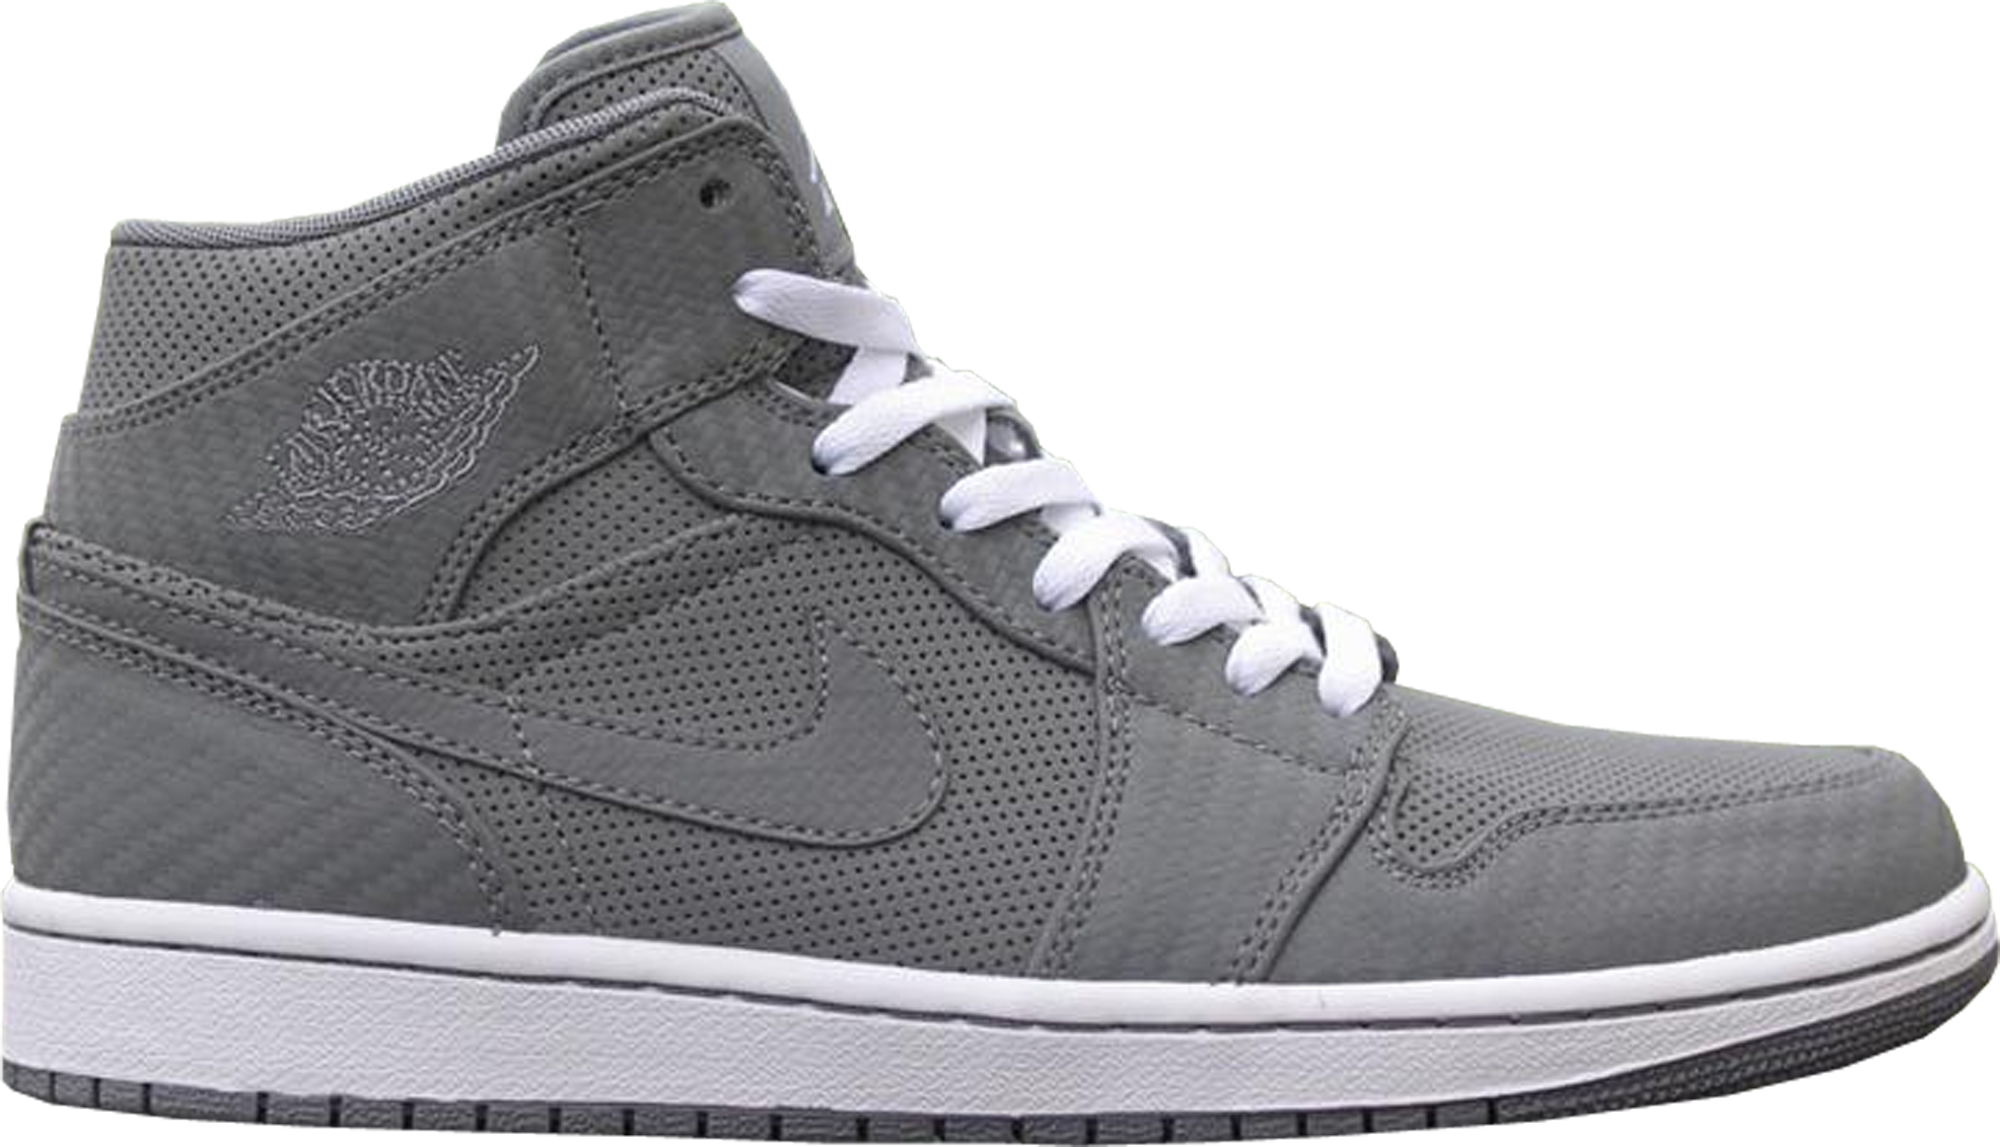 Jordan 1 Phat Cool Grey (Carbon Fiber)